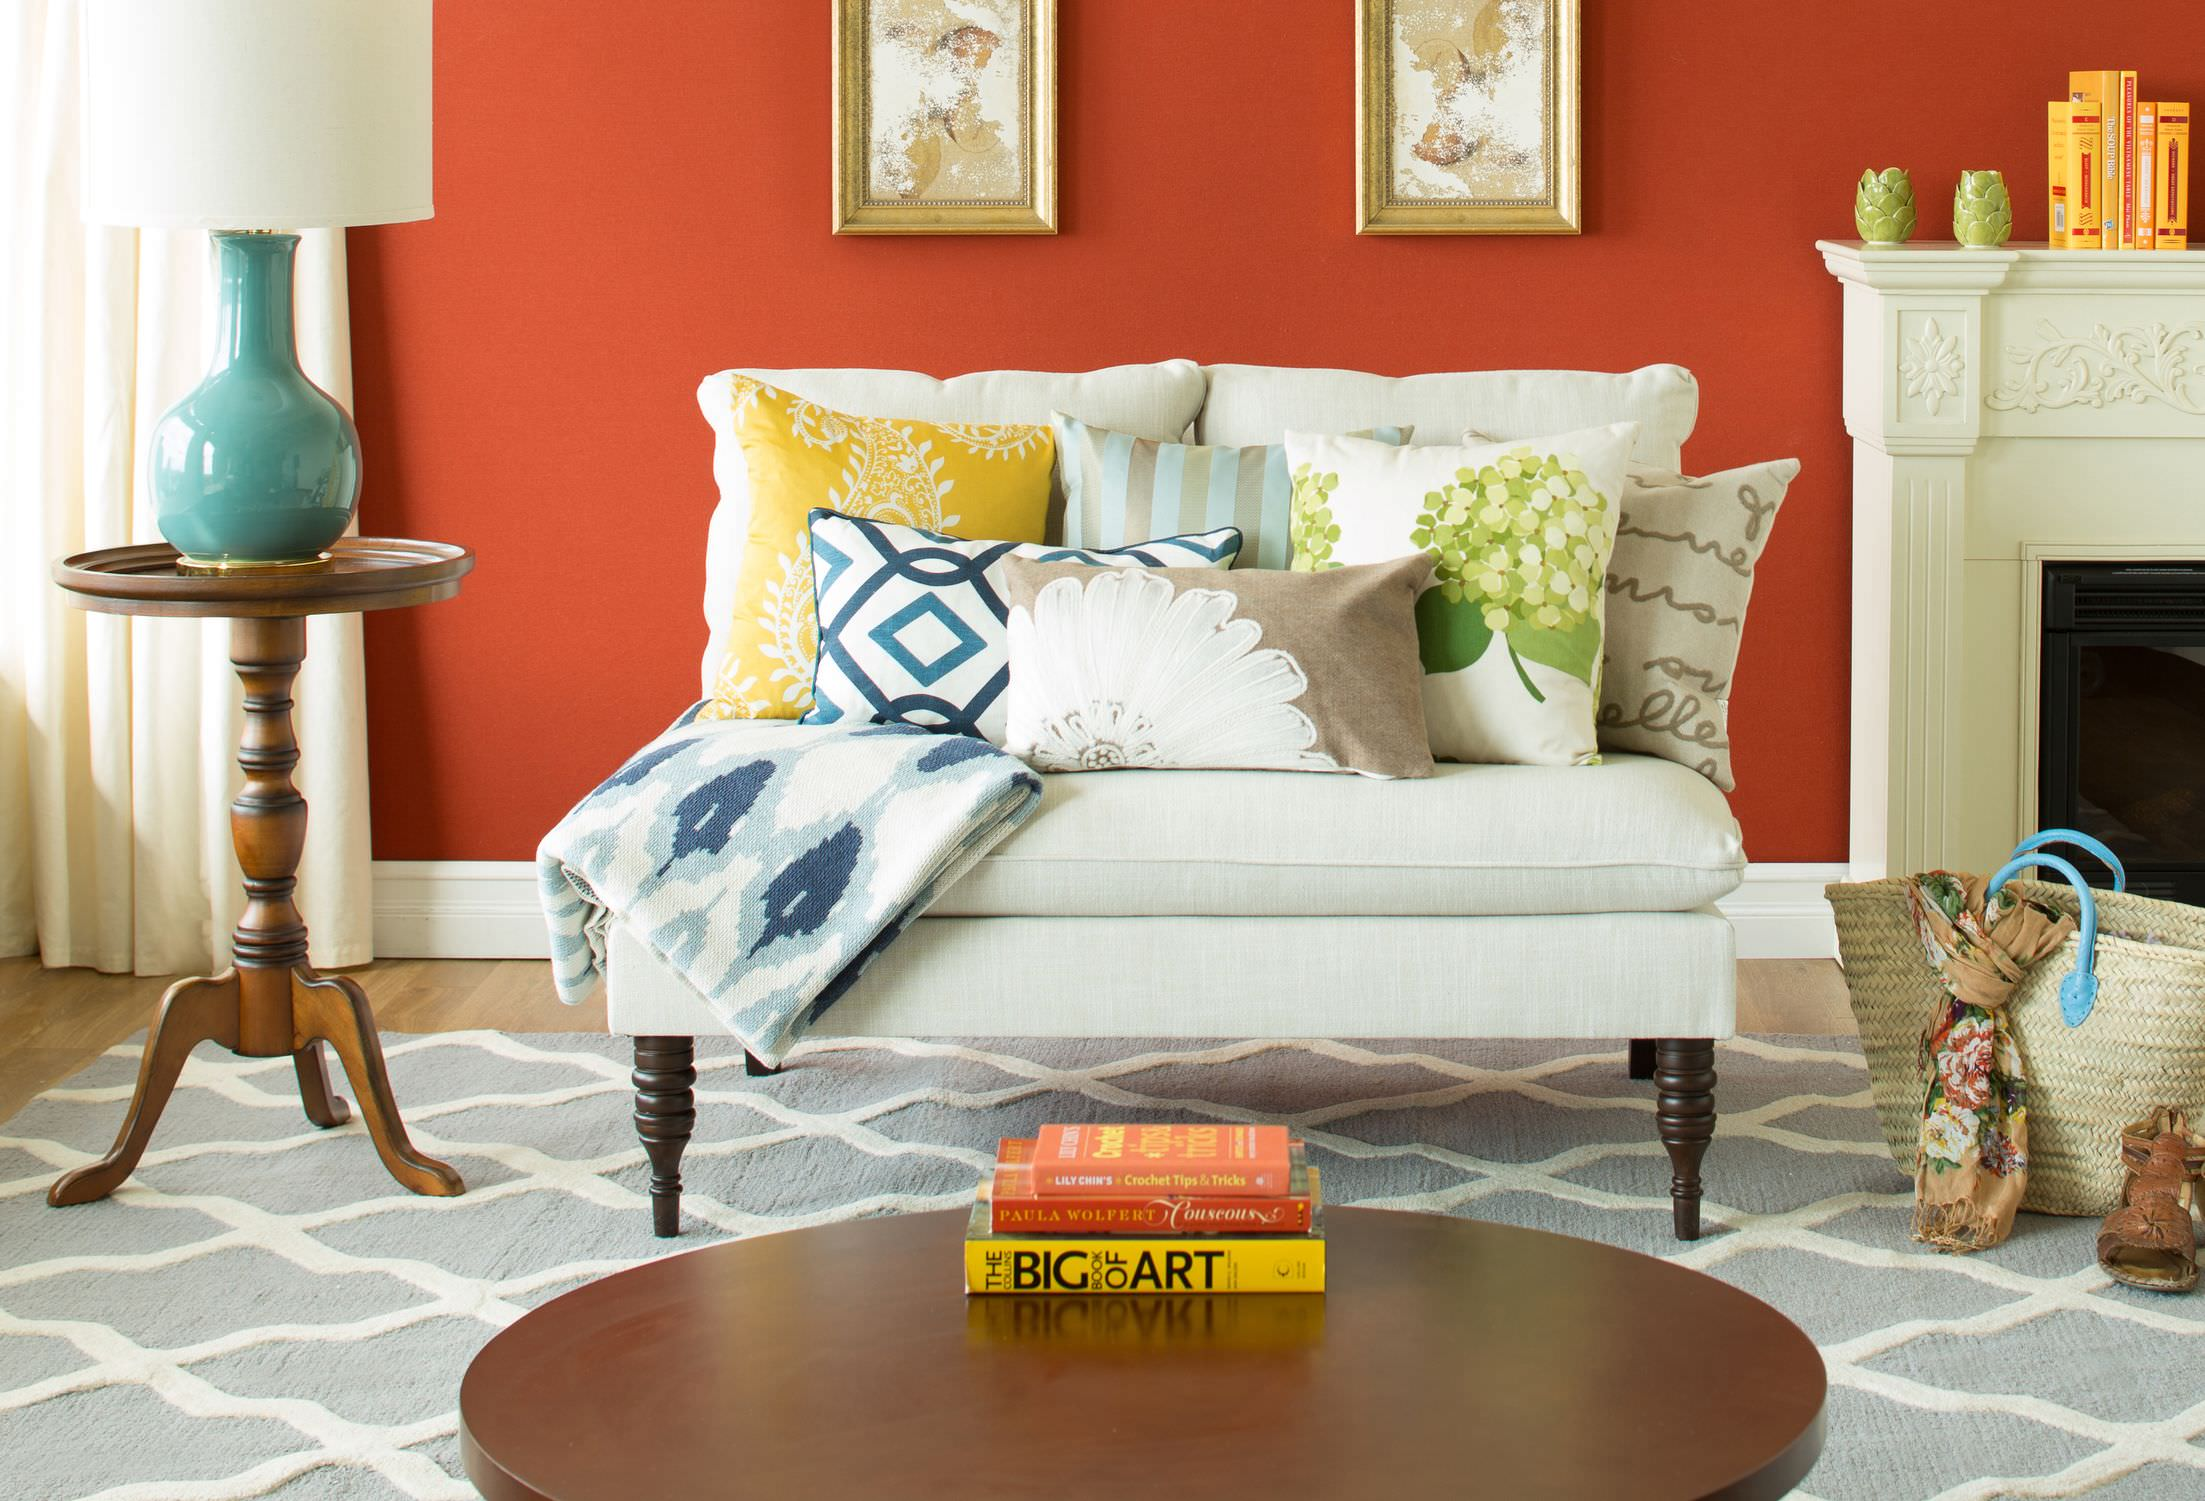 The simple orange background wall, a few books stacked as a centerpiece, and the fireplace panel decor are enough to brighten up this living room's otherwise monotonous color scheme.